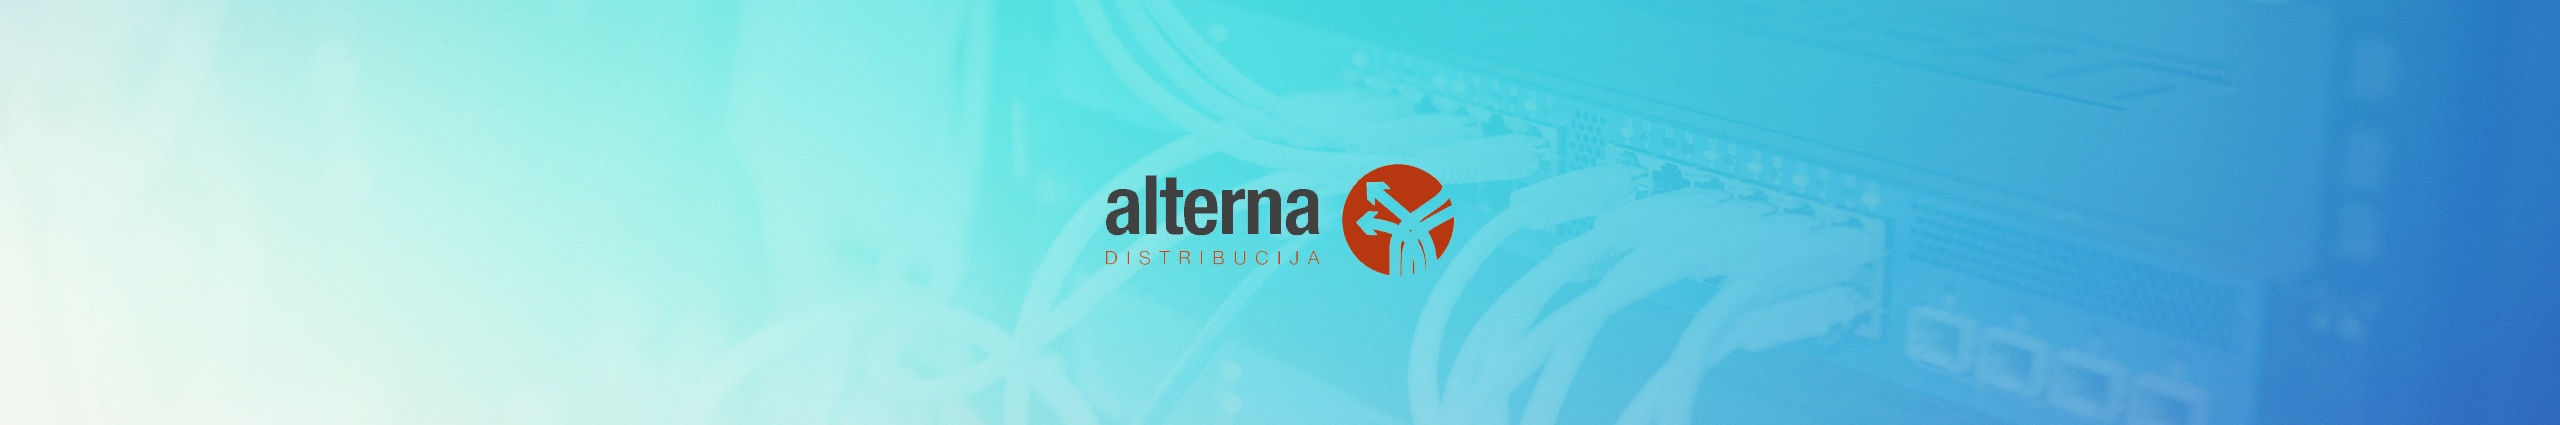 Alterna Distribucijad Case Study